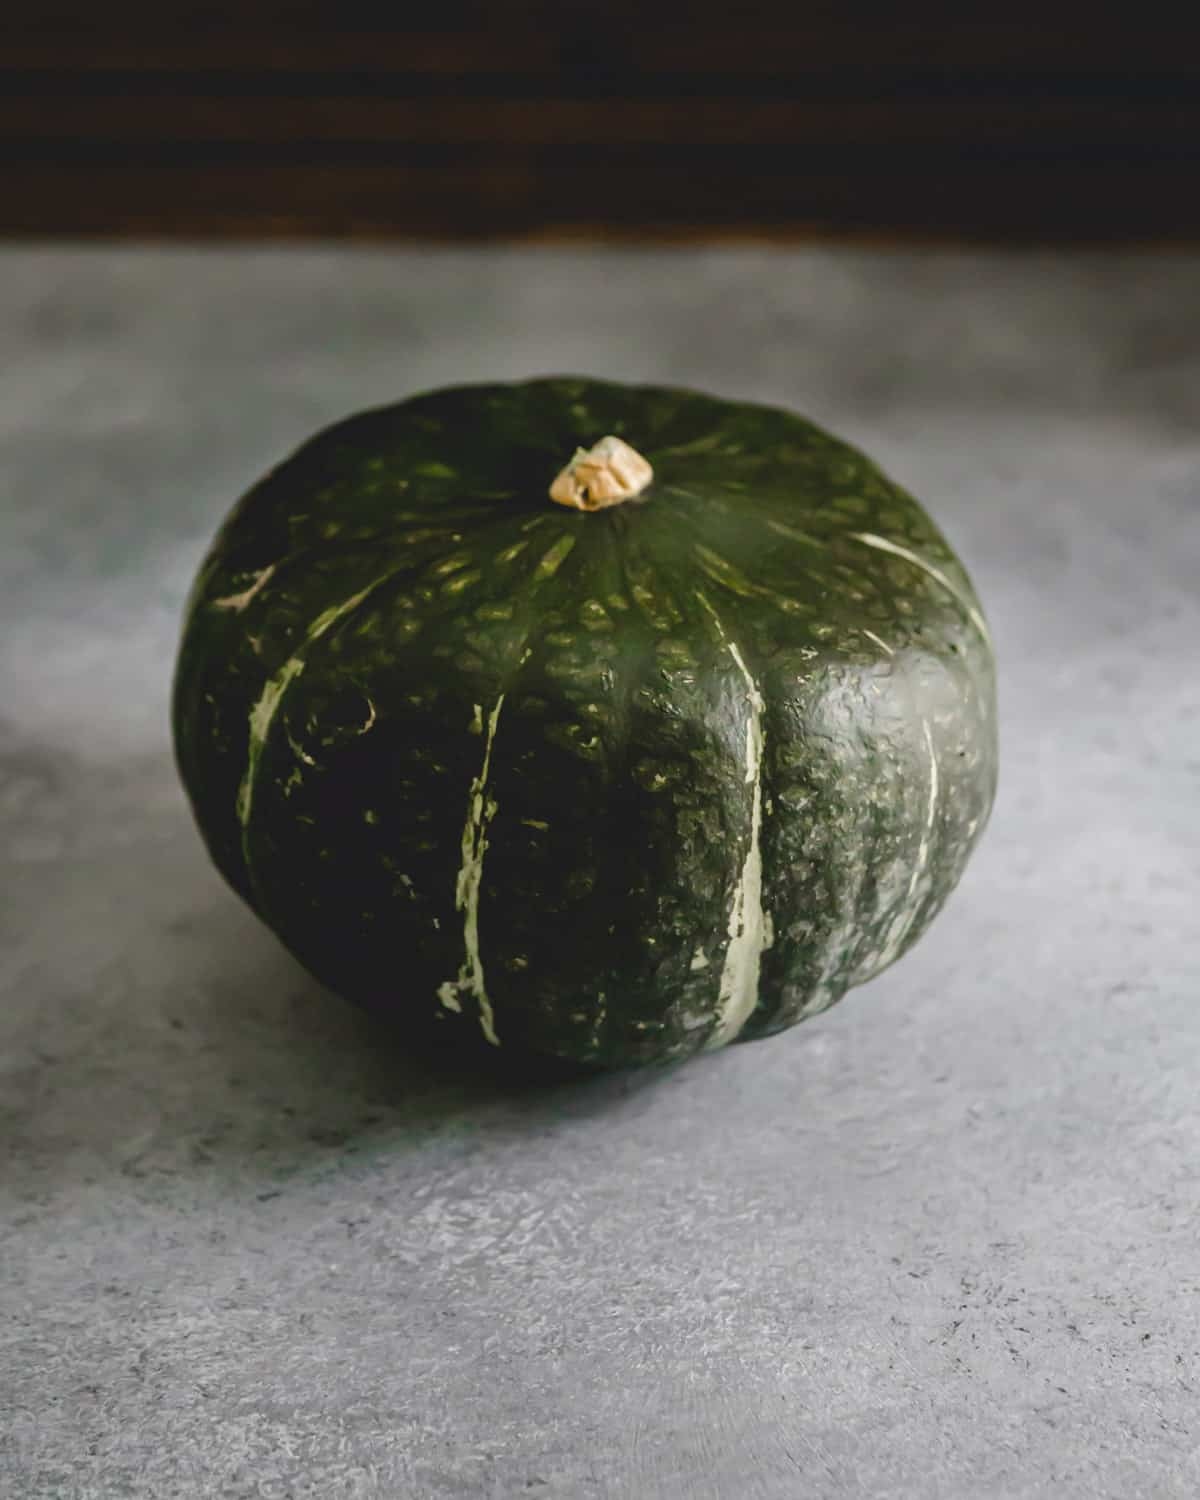 Whole buttercup squash before preparing and cooking.